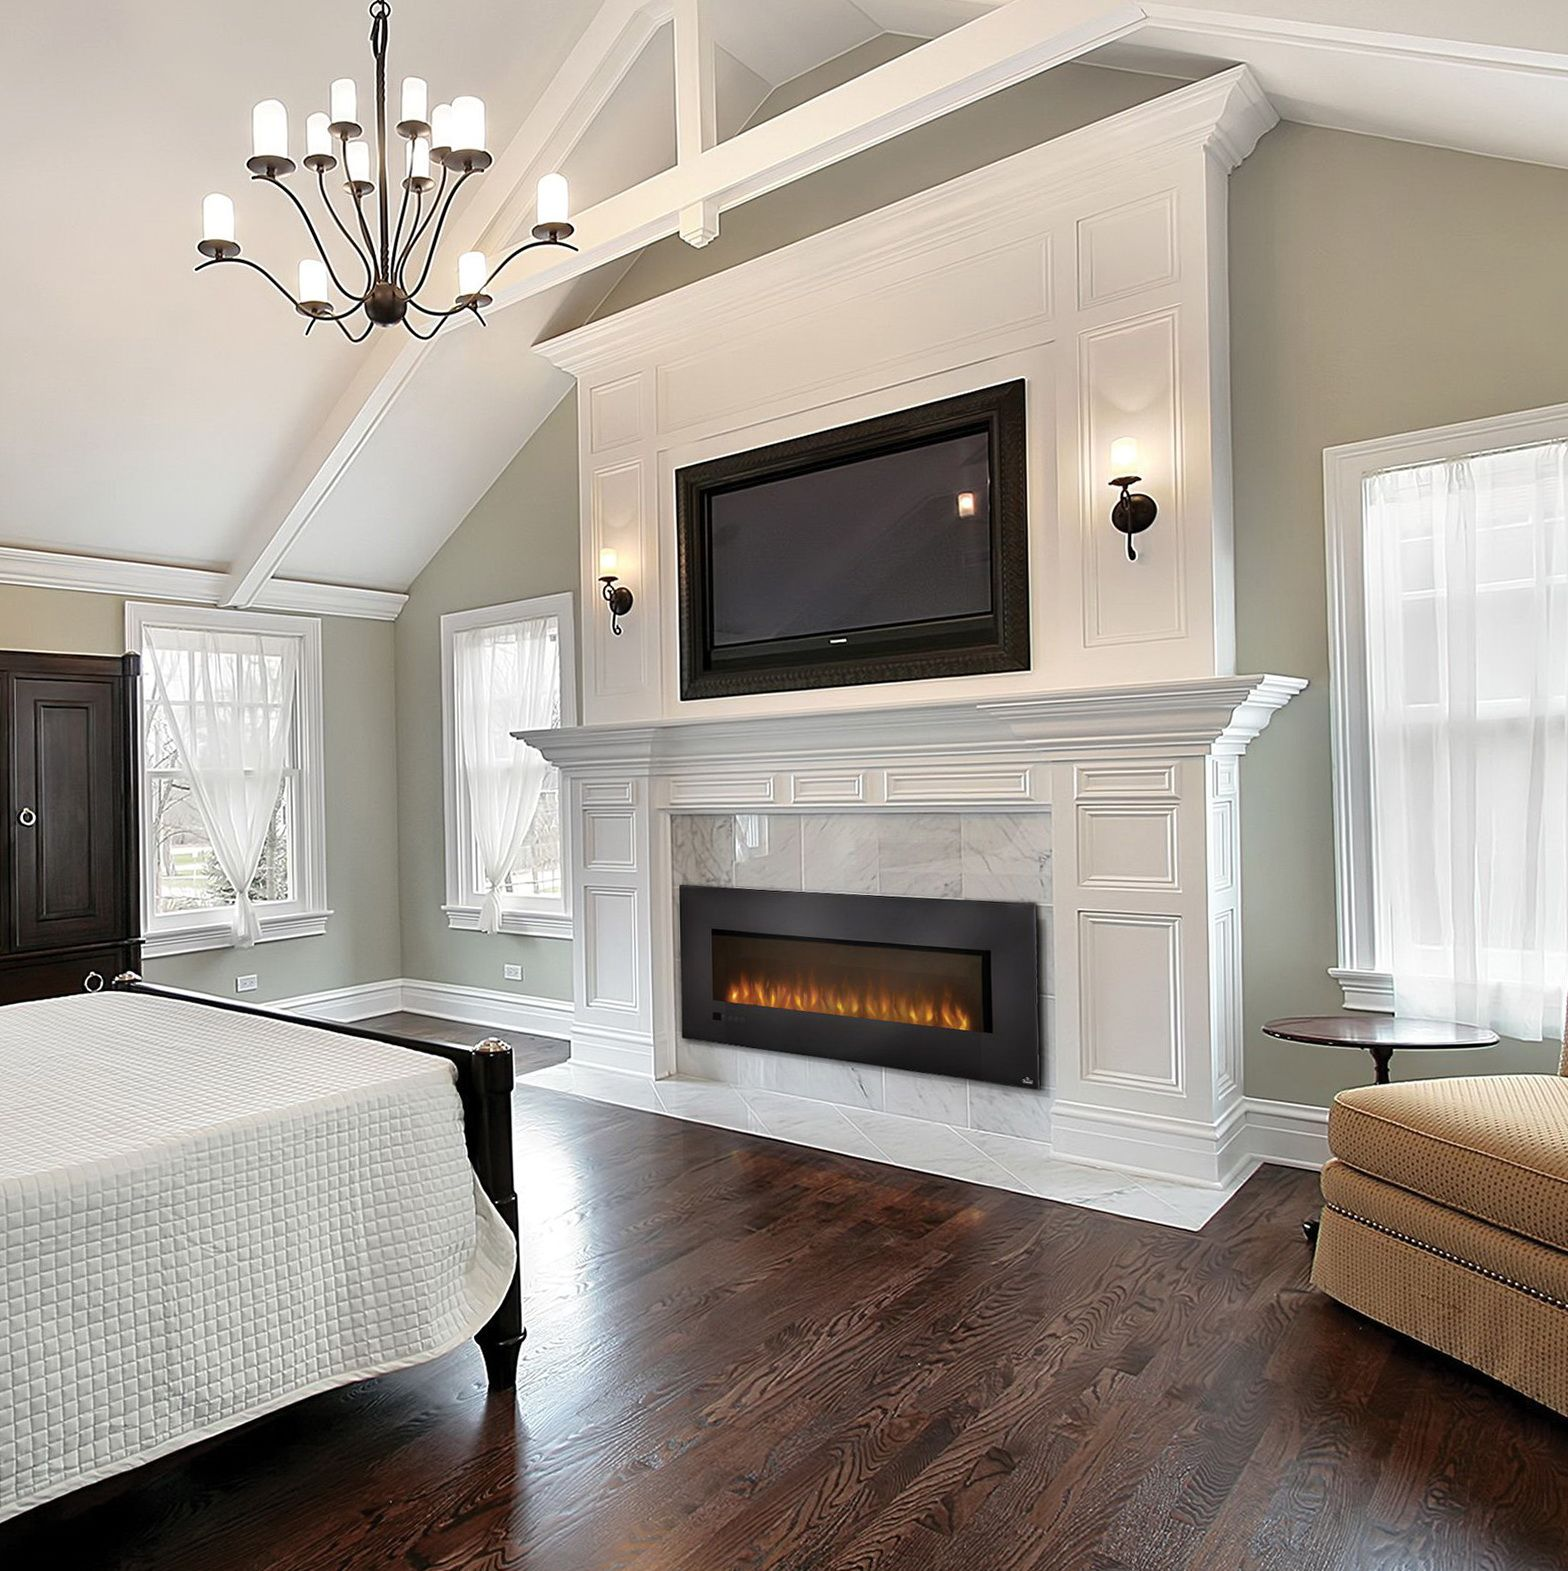 Large Electric Fireplace Insert Bedroom Fireplace